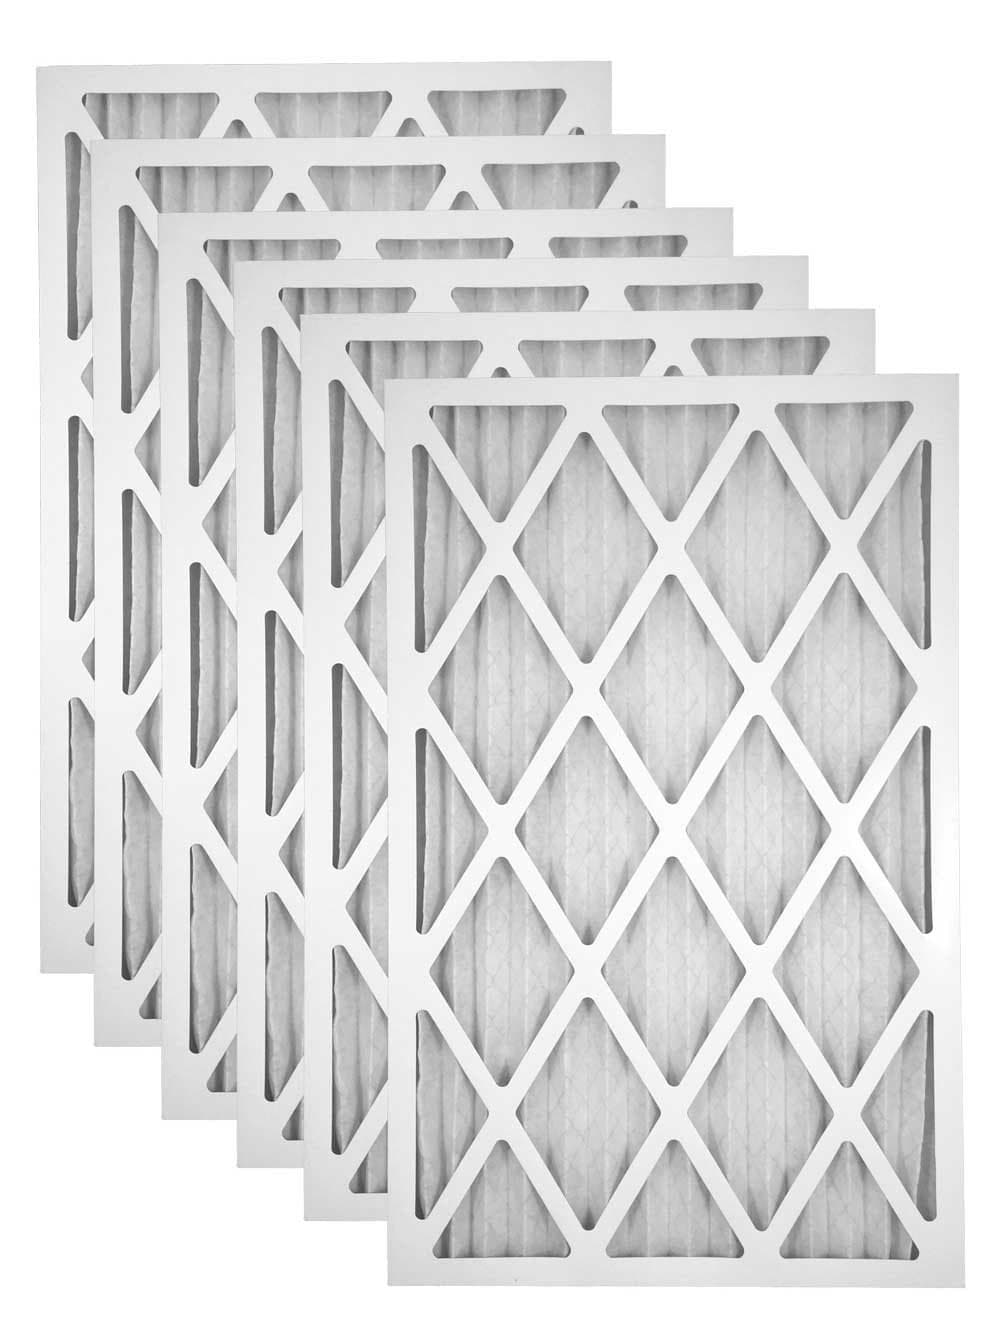 18x20x2 Merv 8 Geothermal Furnace Filter - Case of 6